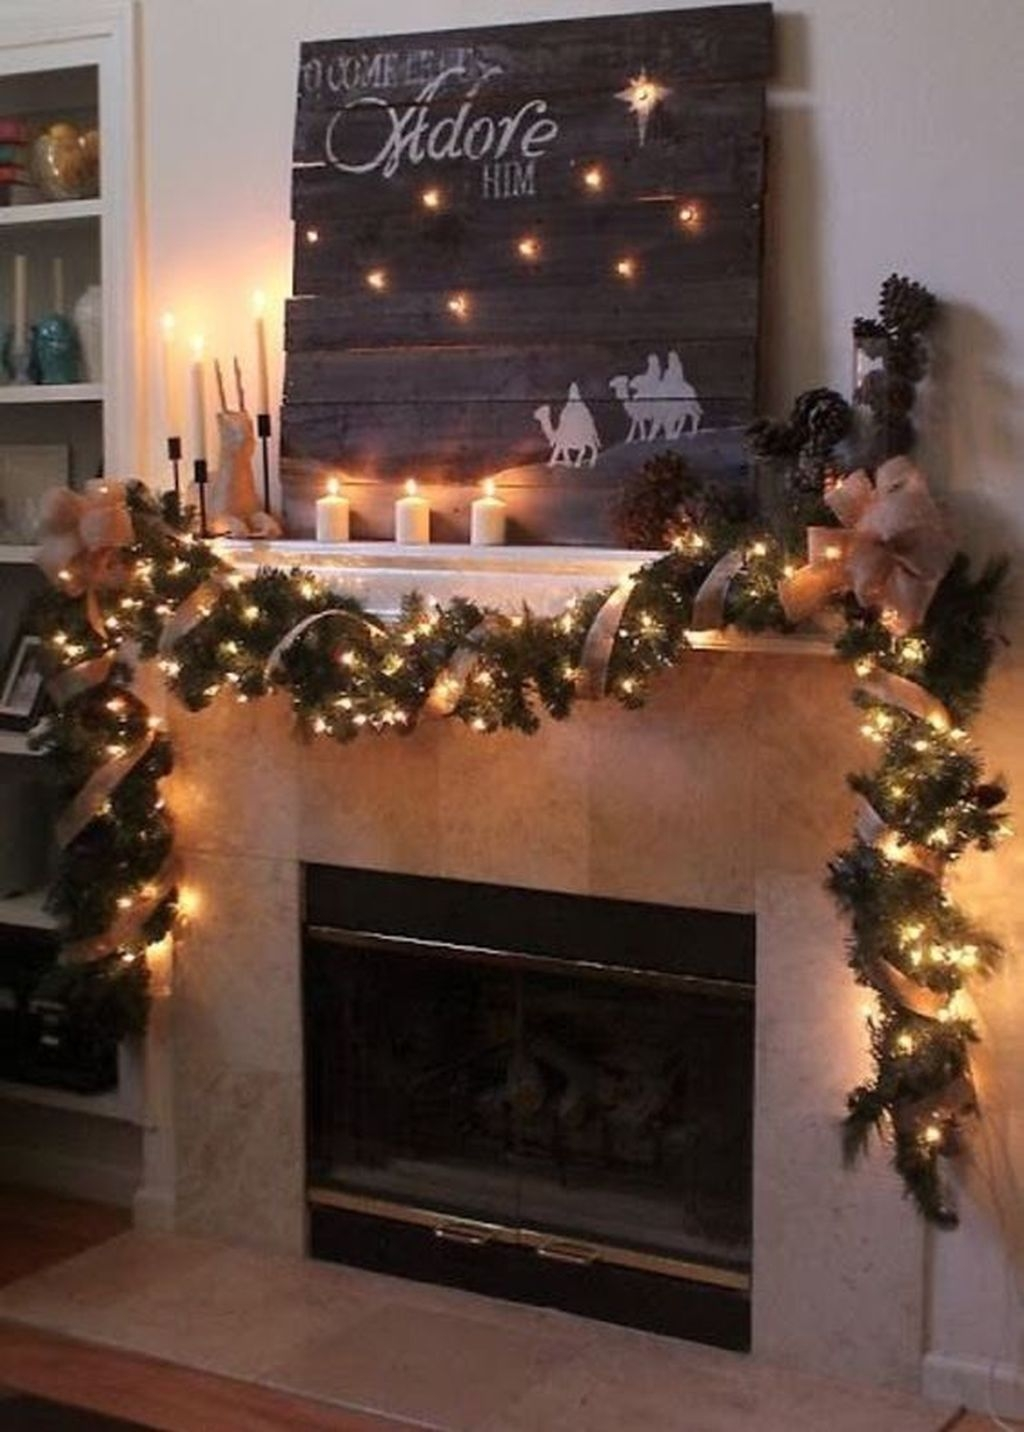 The Best Christmas Fireplace Decoration For Any Home Model 10